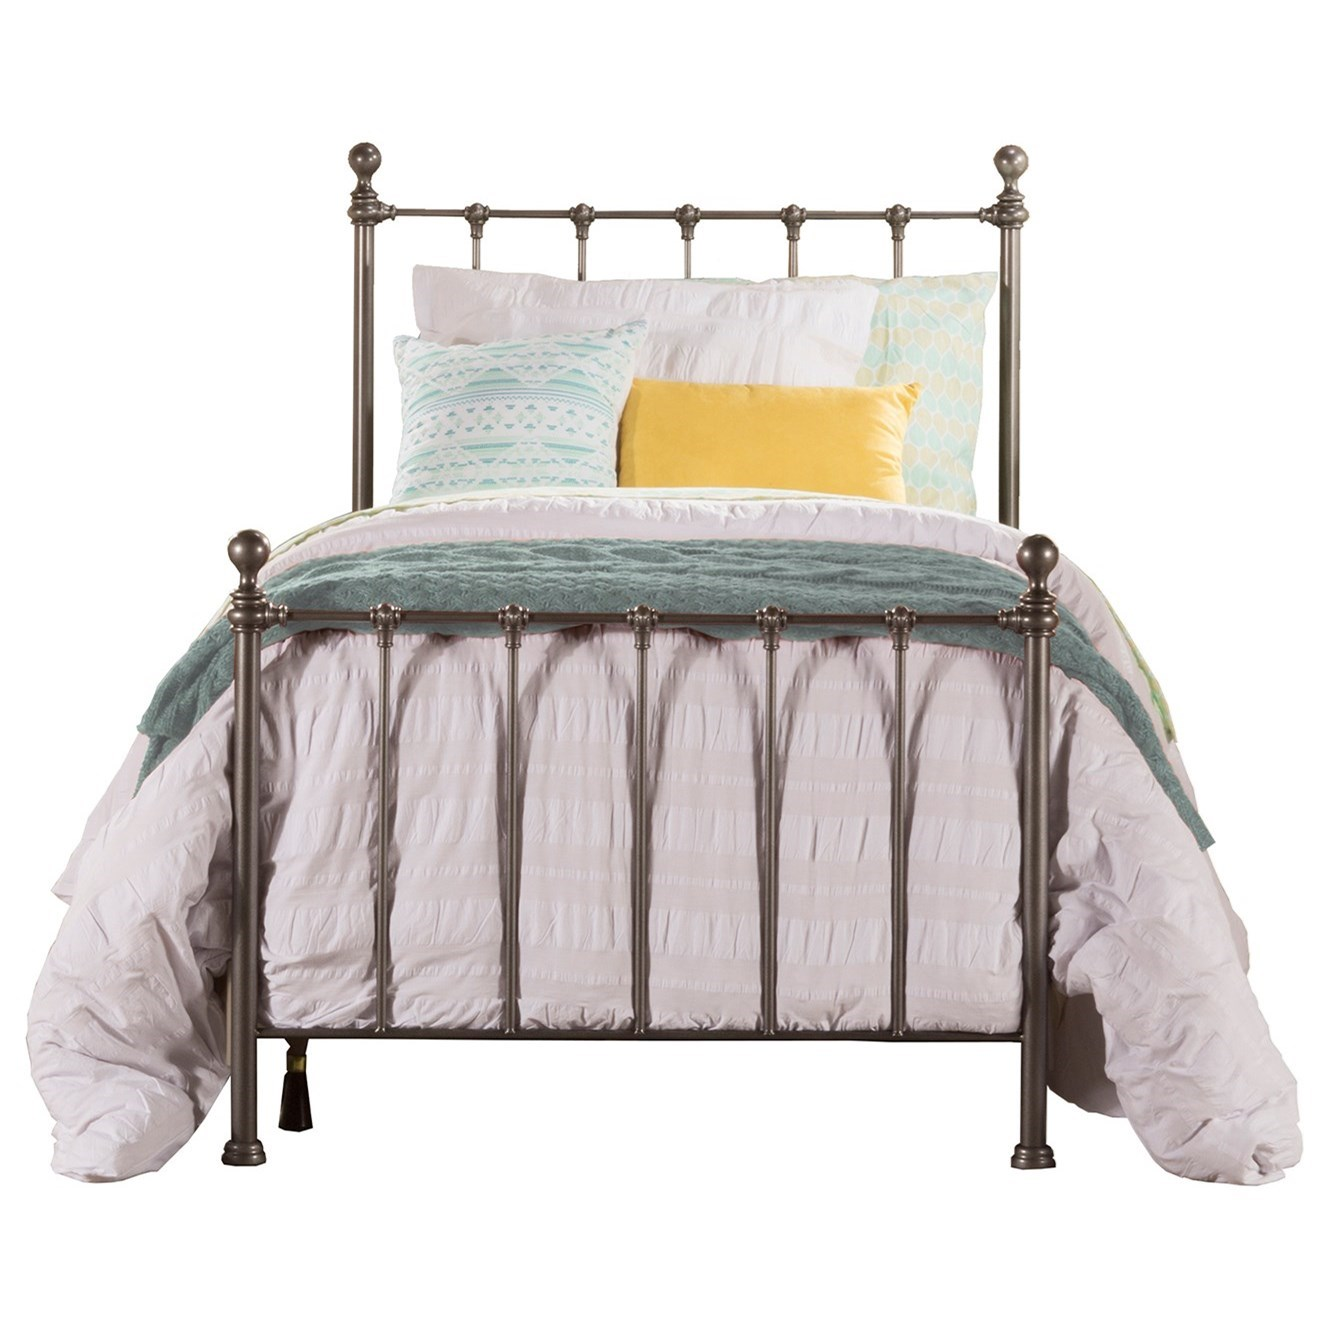 hillsdale metal beds twin bed set bed frame not included dream home furniture panel beds. Black Bedroom Furniture Sets. Home Design Ideas